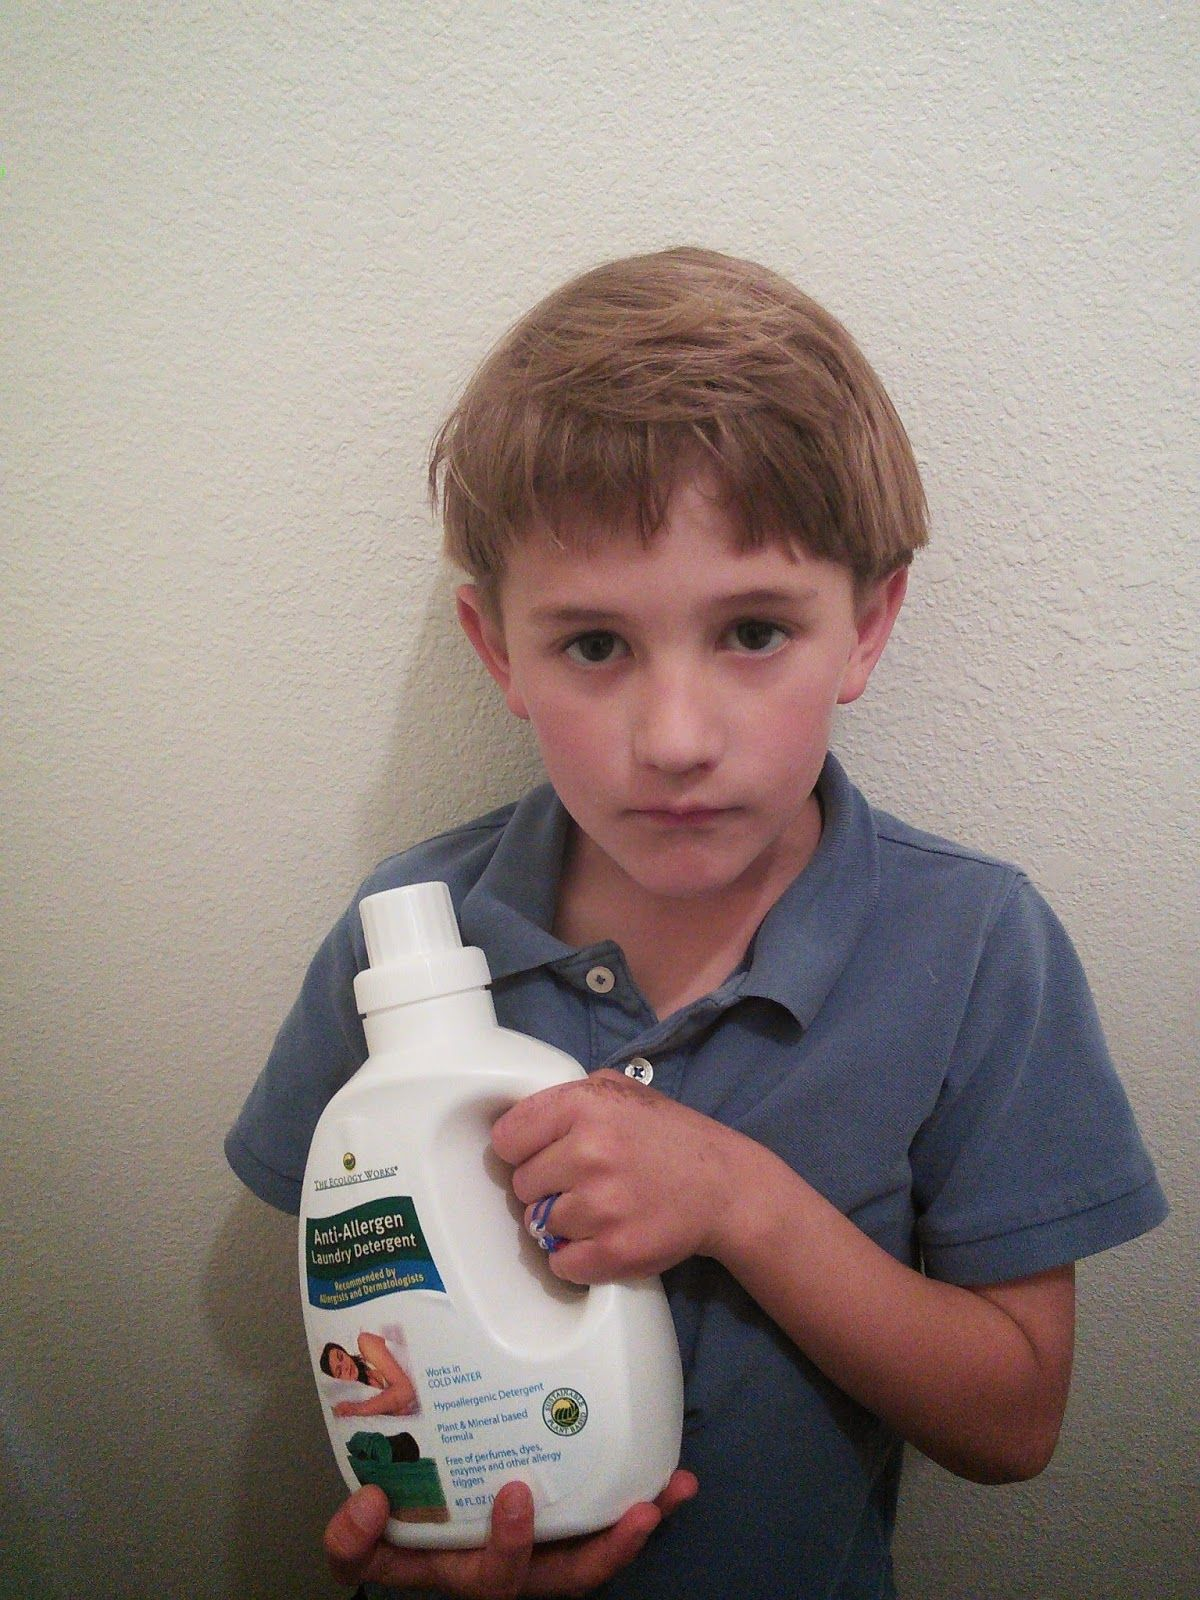 My Son Has Sensitive Skin And This Anti Allergen Laundry Detergent